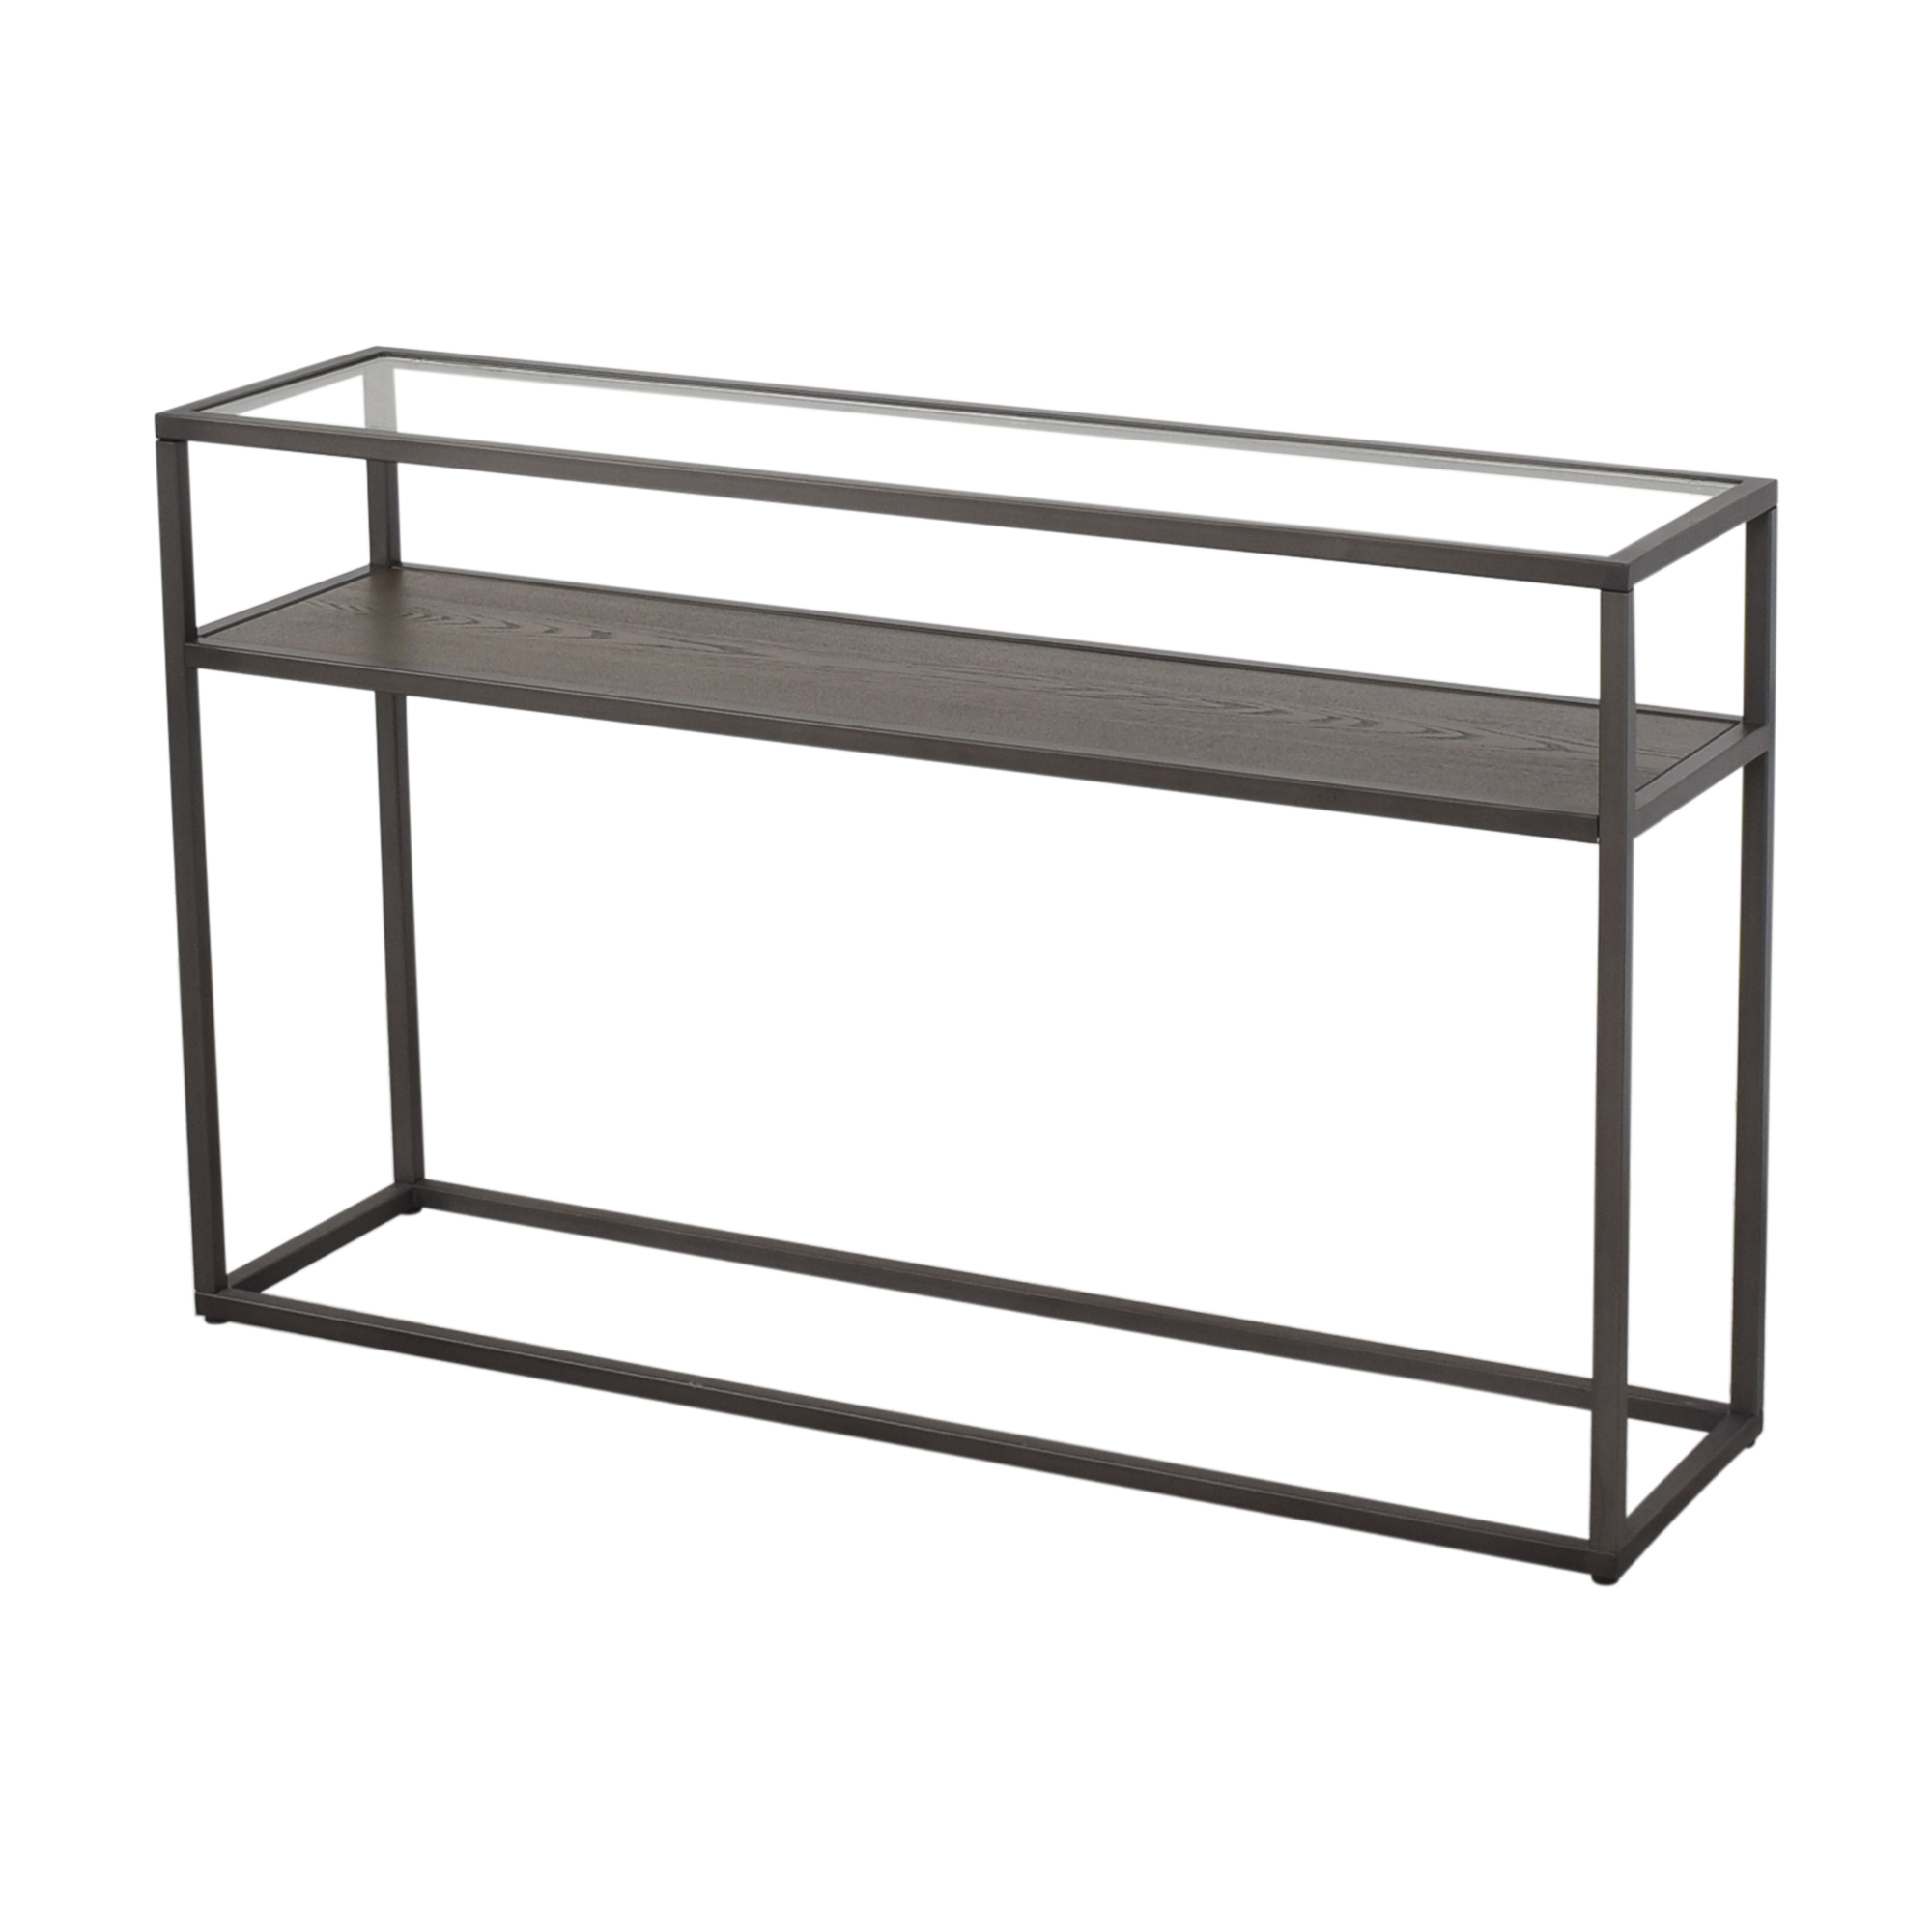 Crate & Barrel Crate & Barrel Switch Console Table pa